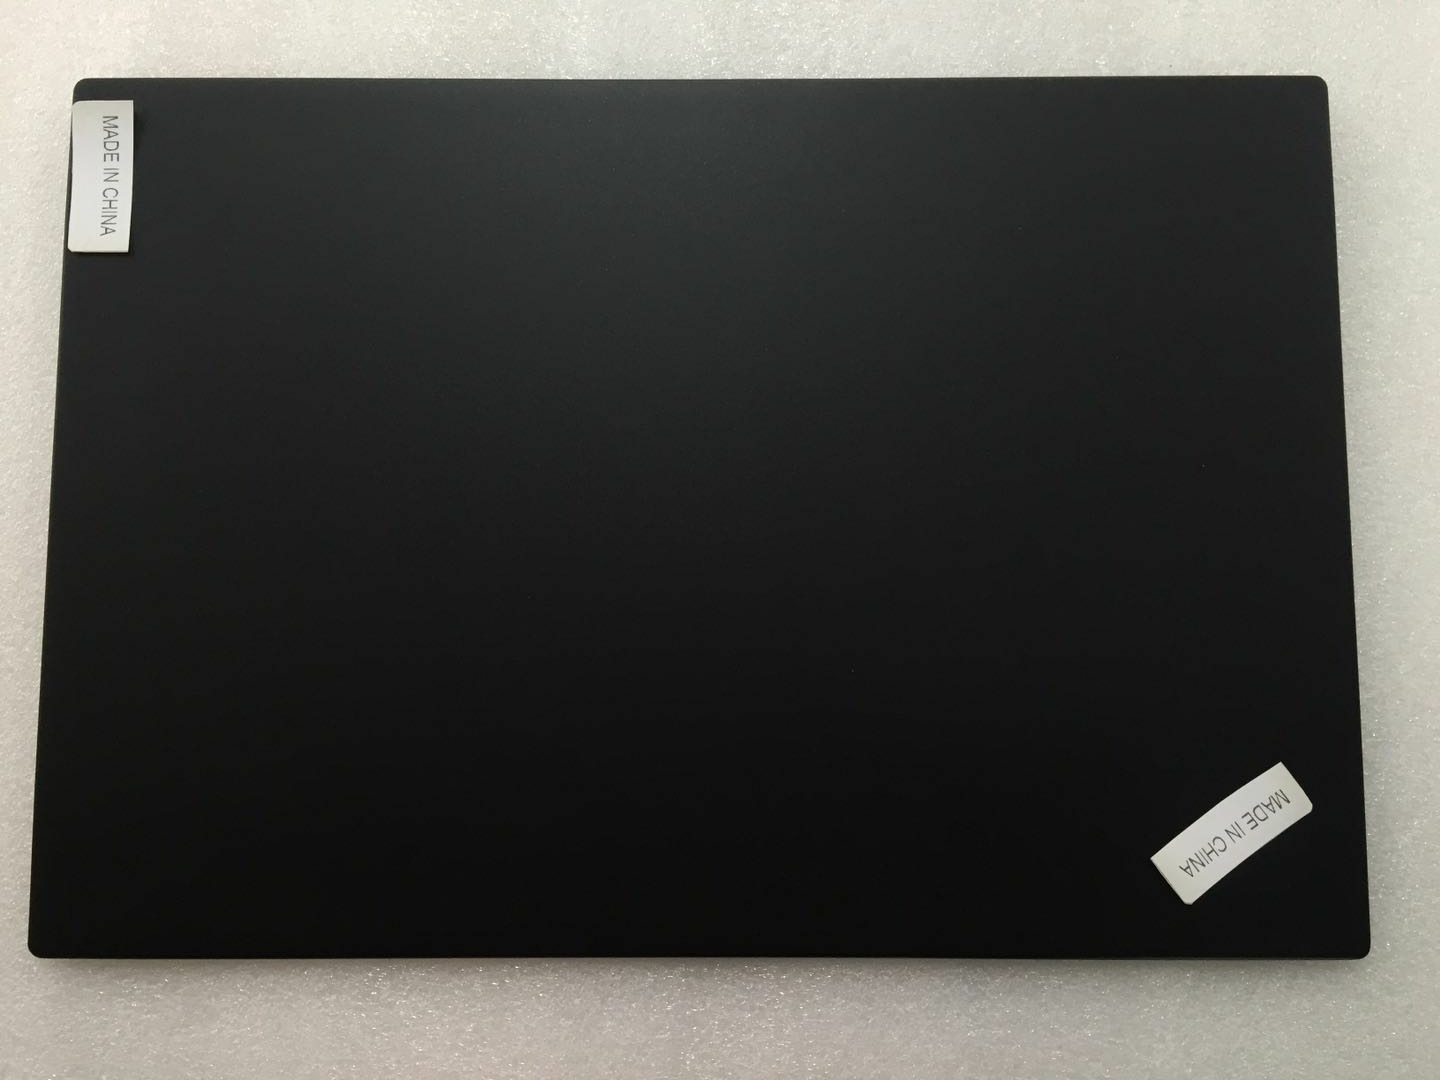 New 01ER089 00JT992 Lenovo ThinkPad T460S T470S Top Case LCD Back Cover TOUCH